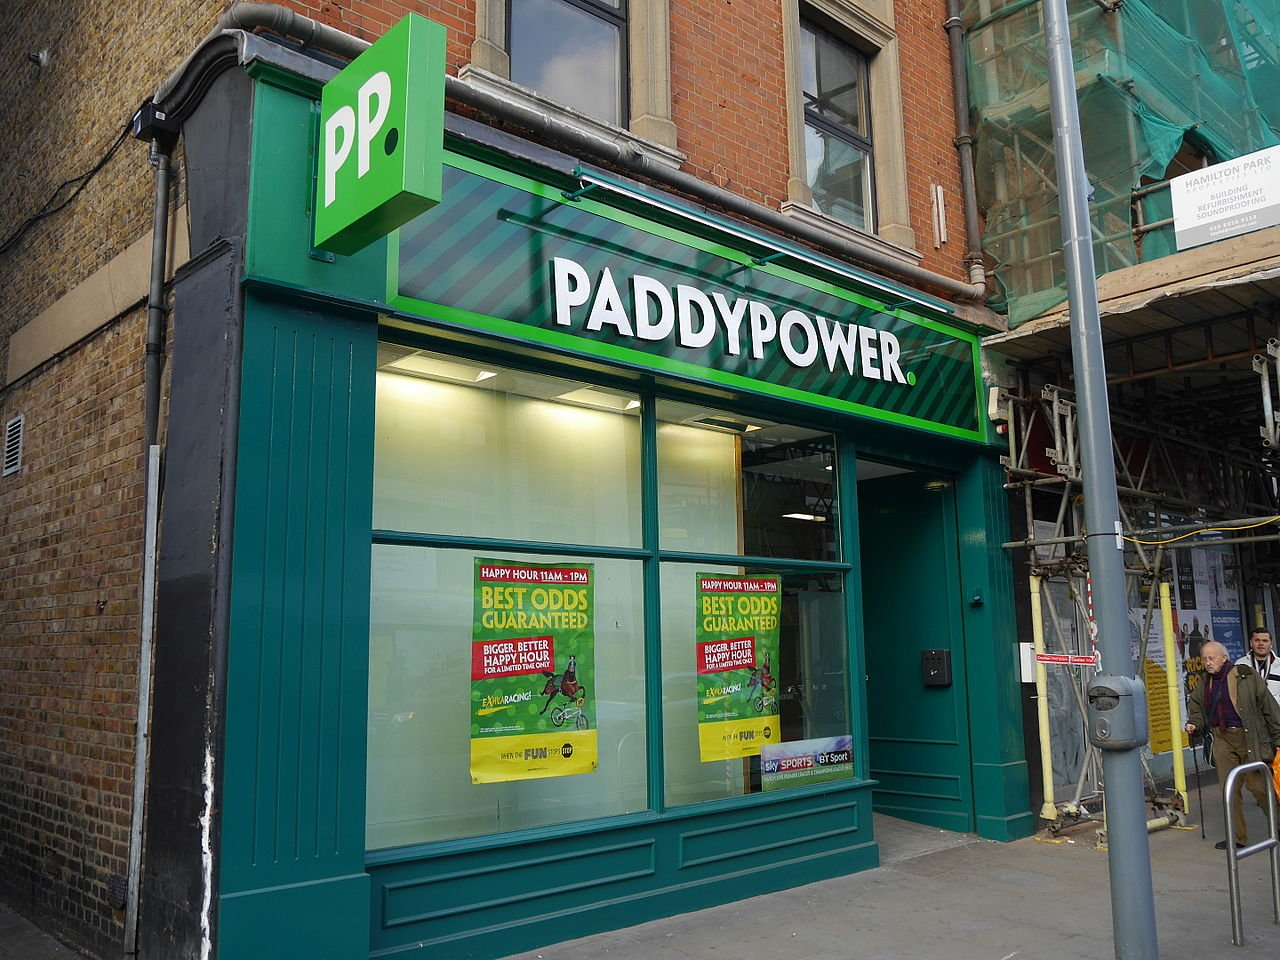 Paddy Power Wettbüro